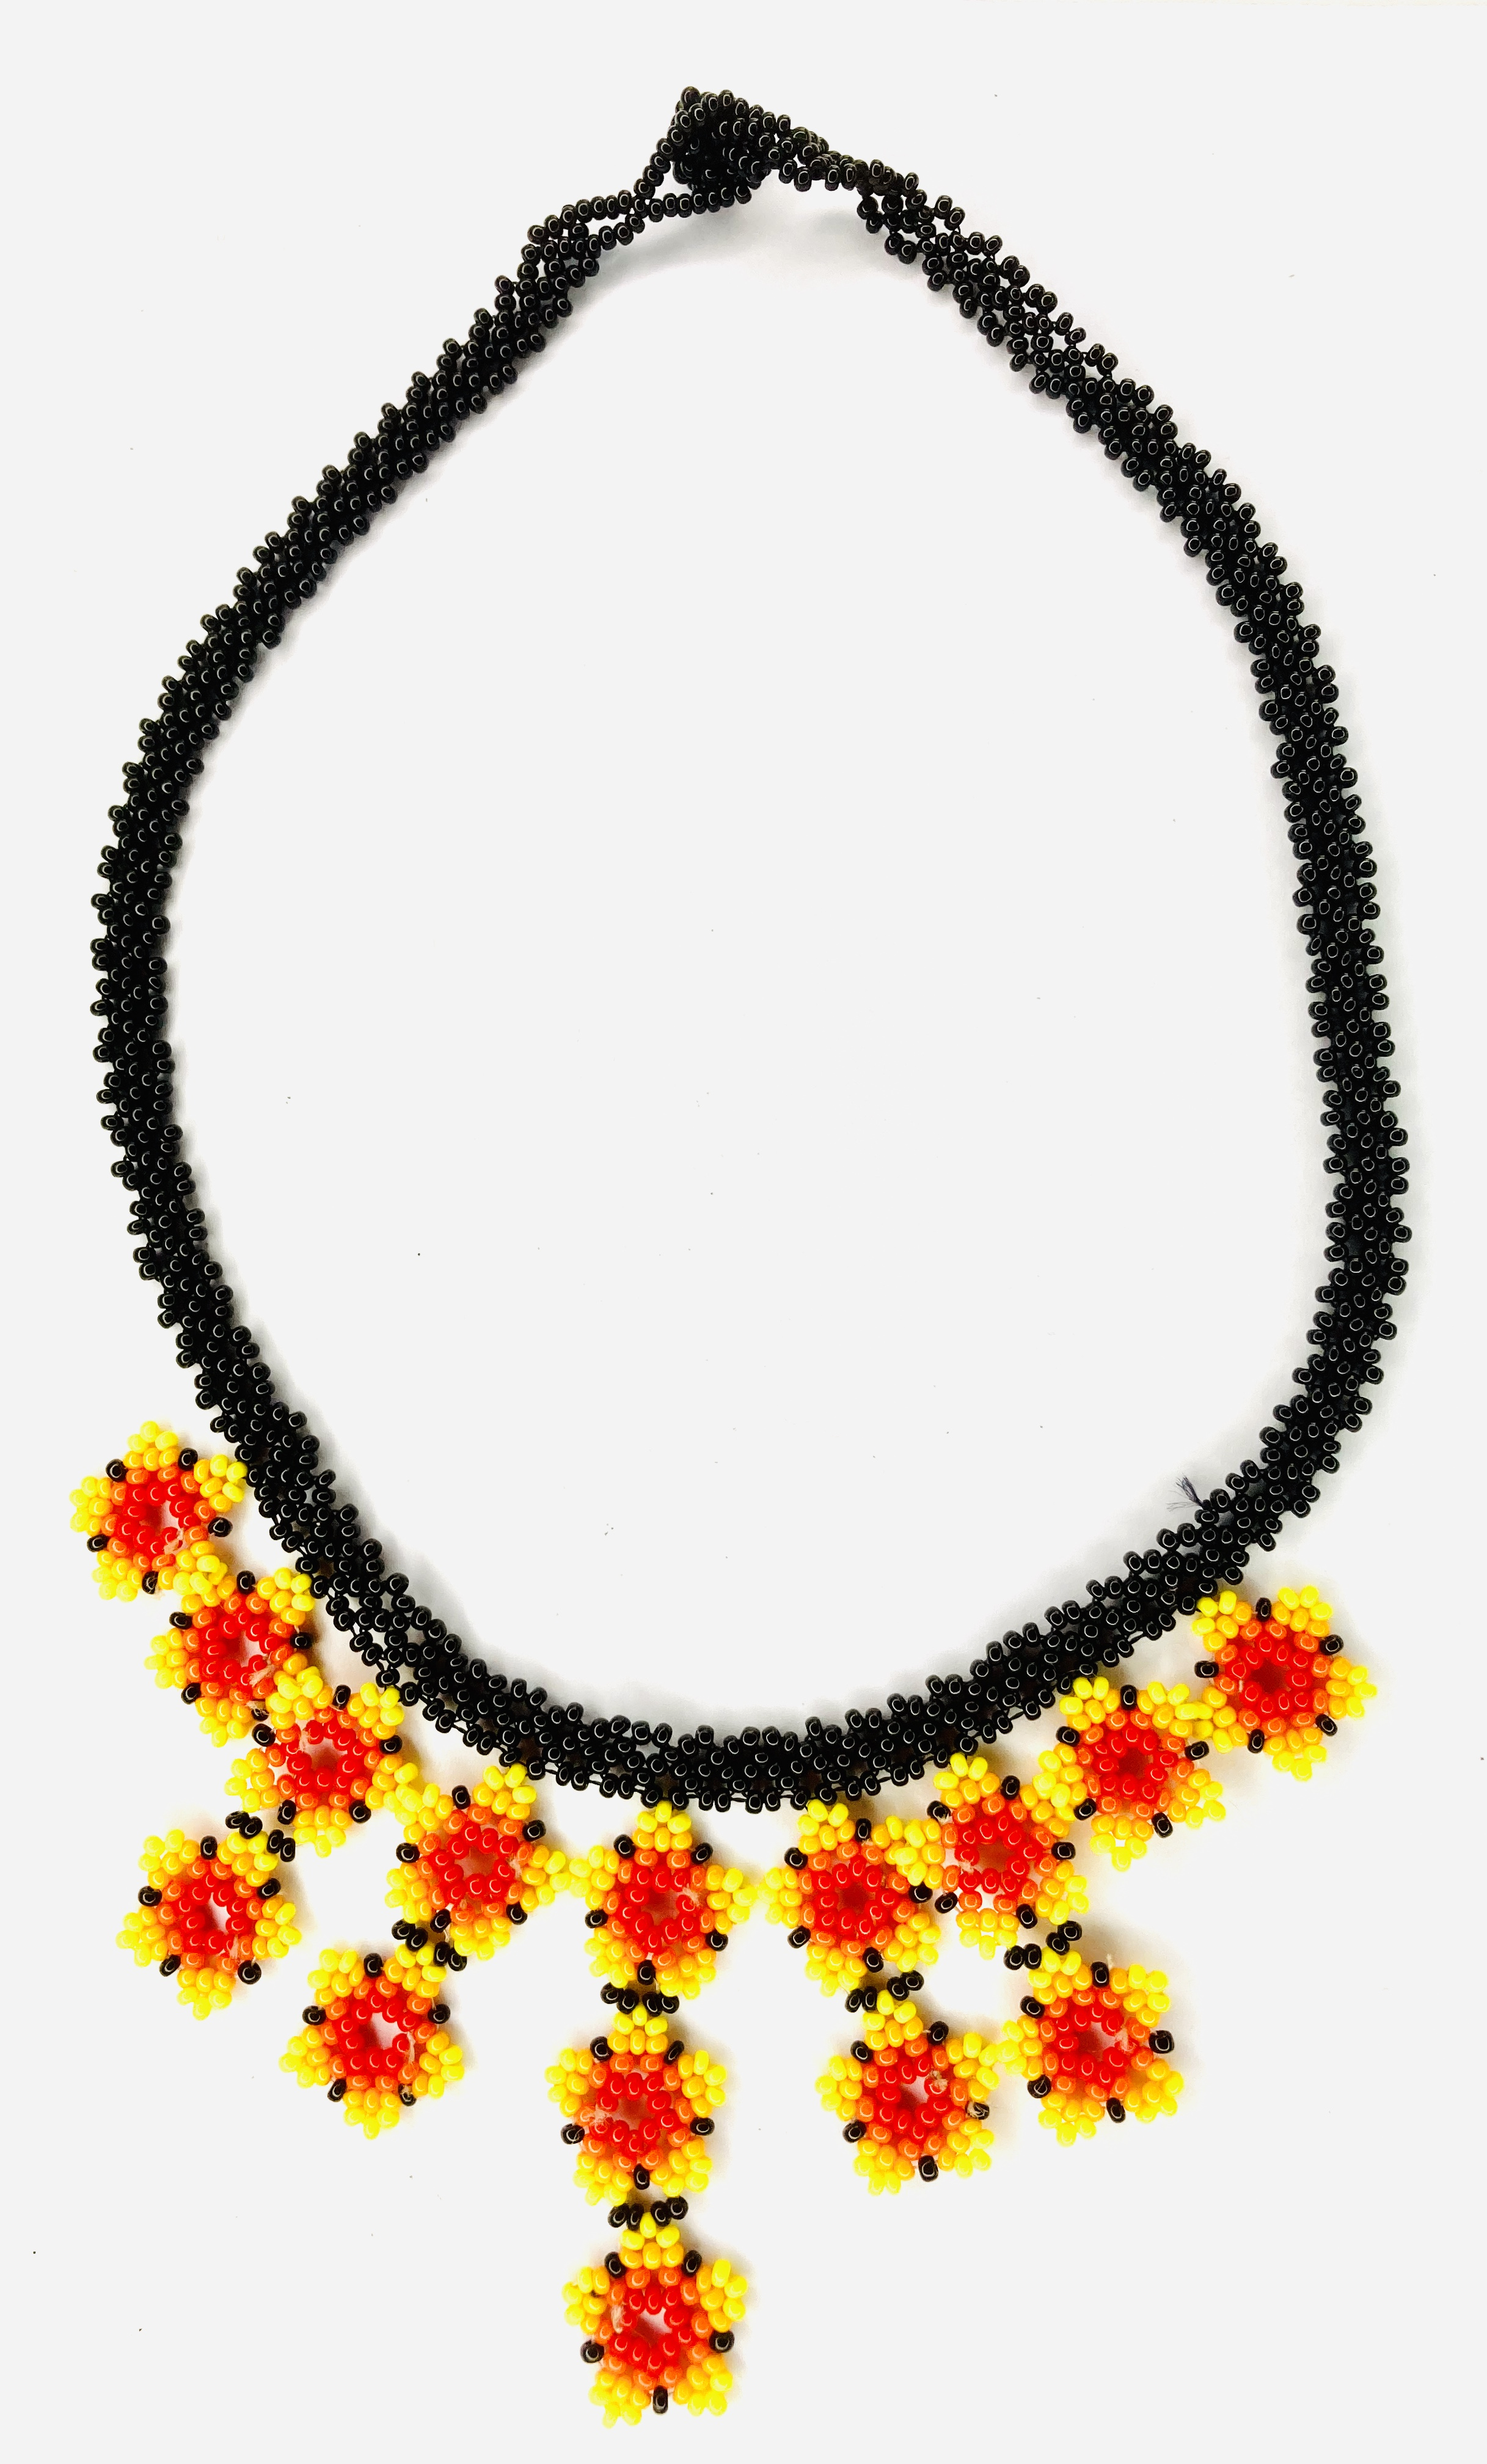 Fulni-ô People: Yellow, Red and Black Handcrafted Necklace